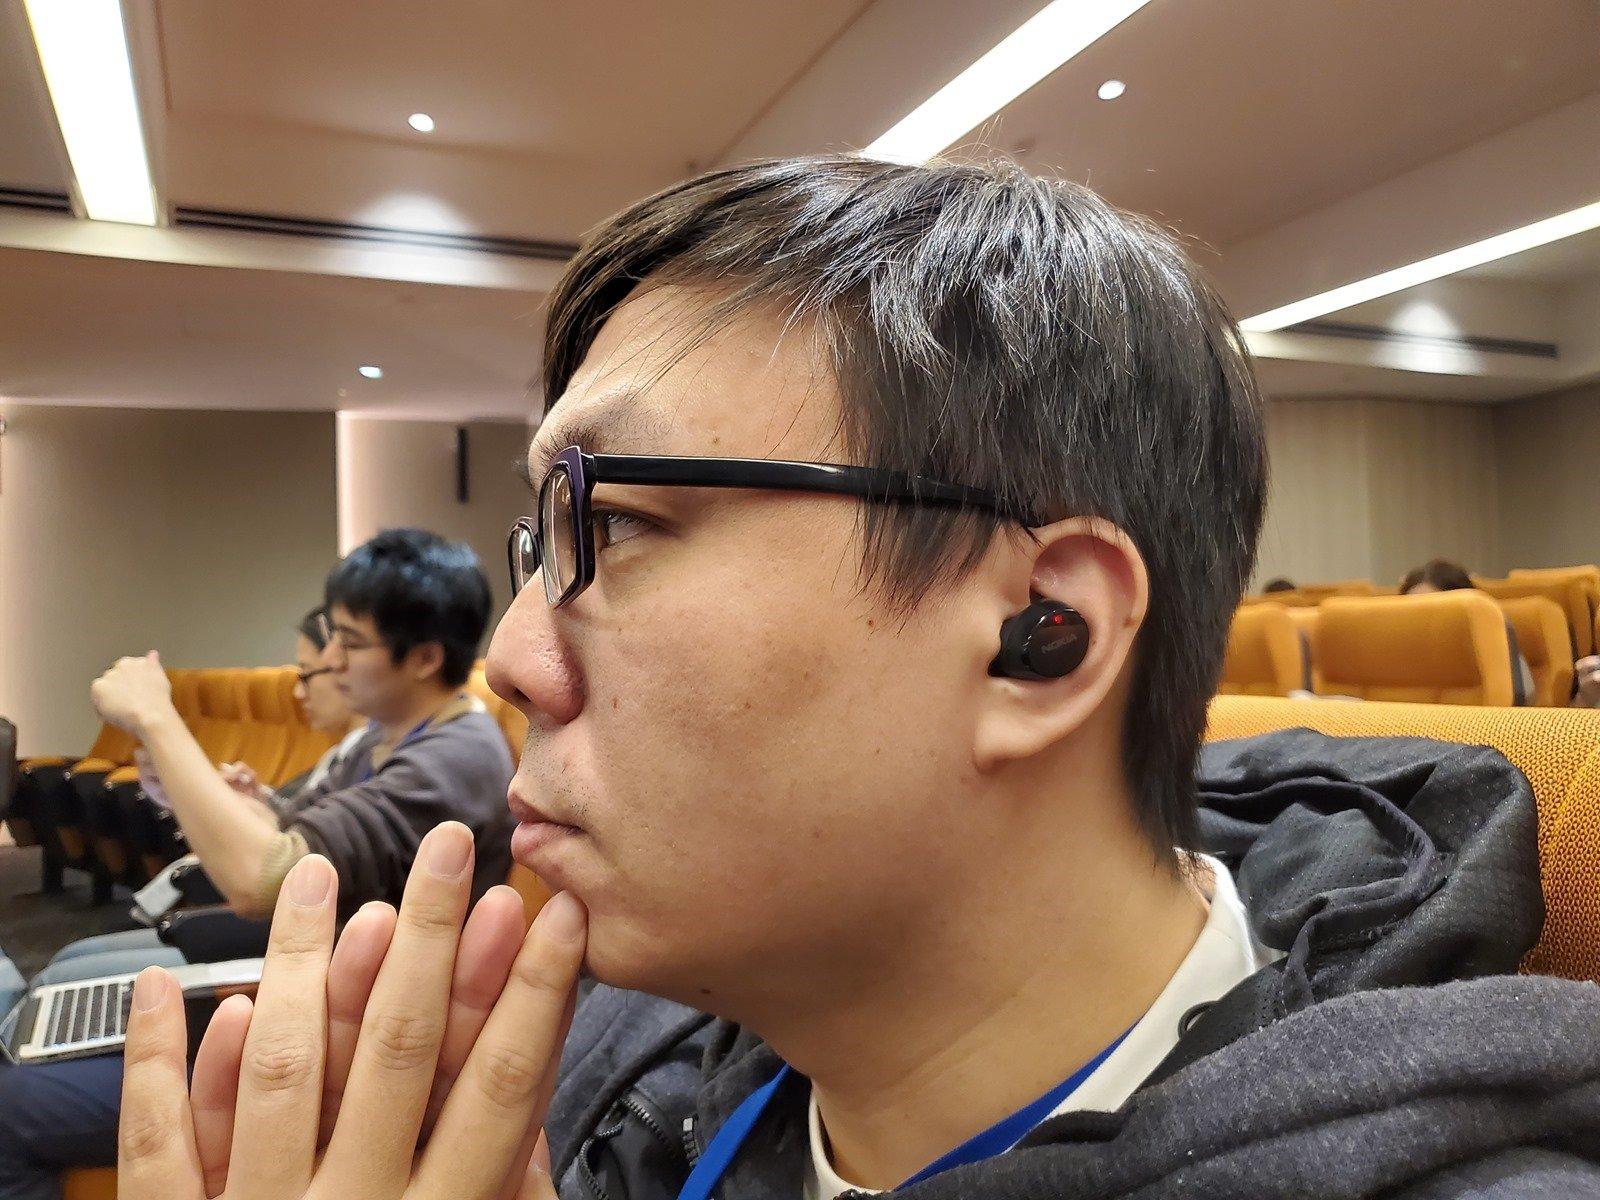 Nokia 超持久真無線藍牙耳機 Nokia Power Earbuds 開箱!150 小時電力不用 3000 可入手! @3C 達人廖阿輝